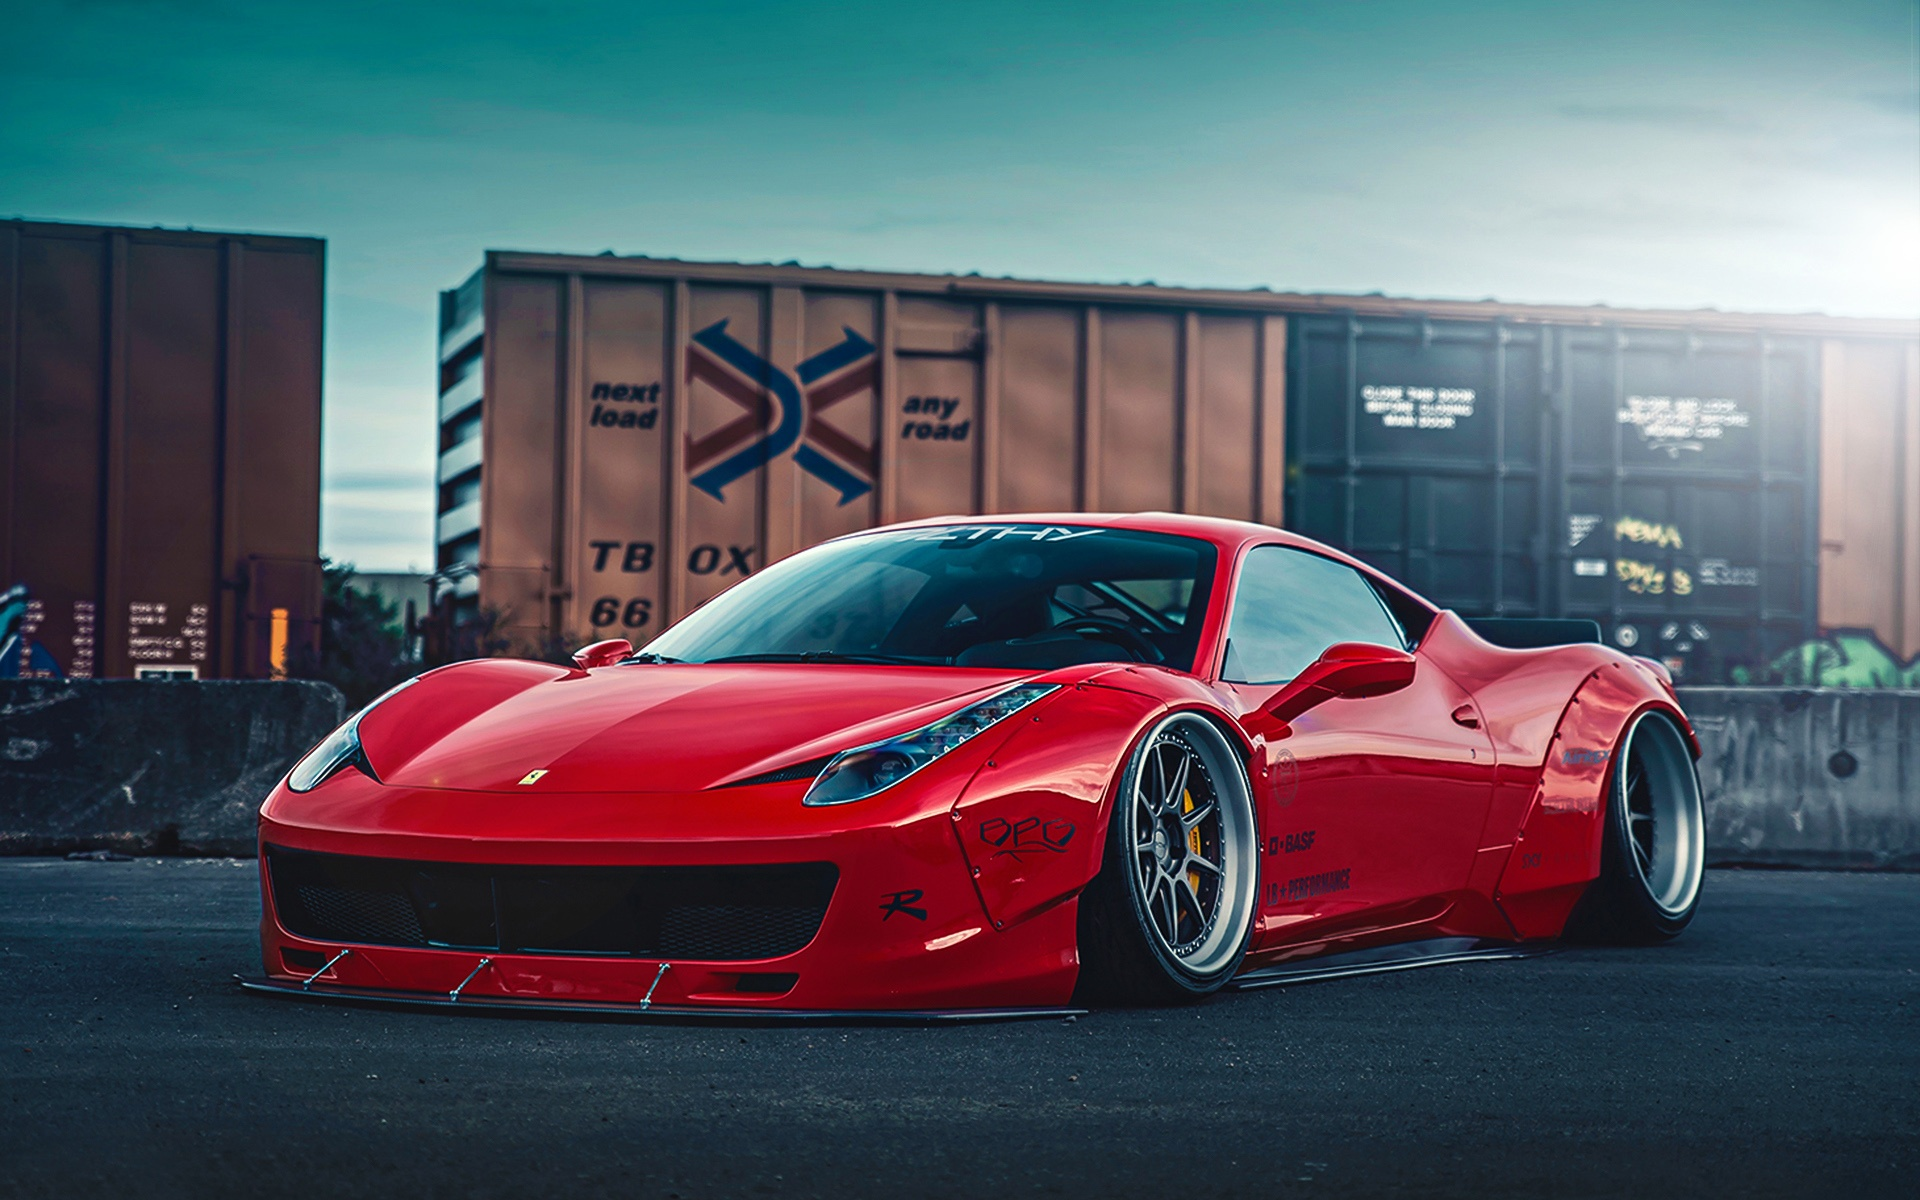 Ferrari Wallpaper - HD Wallpapers Backgrounds of Your Choice